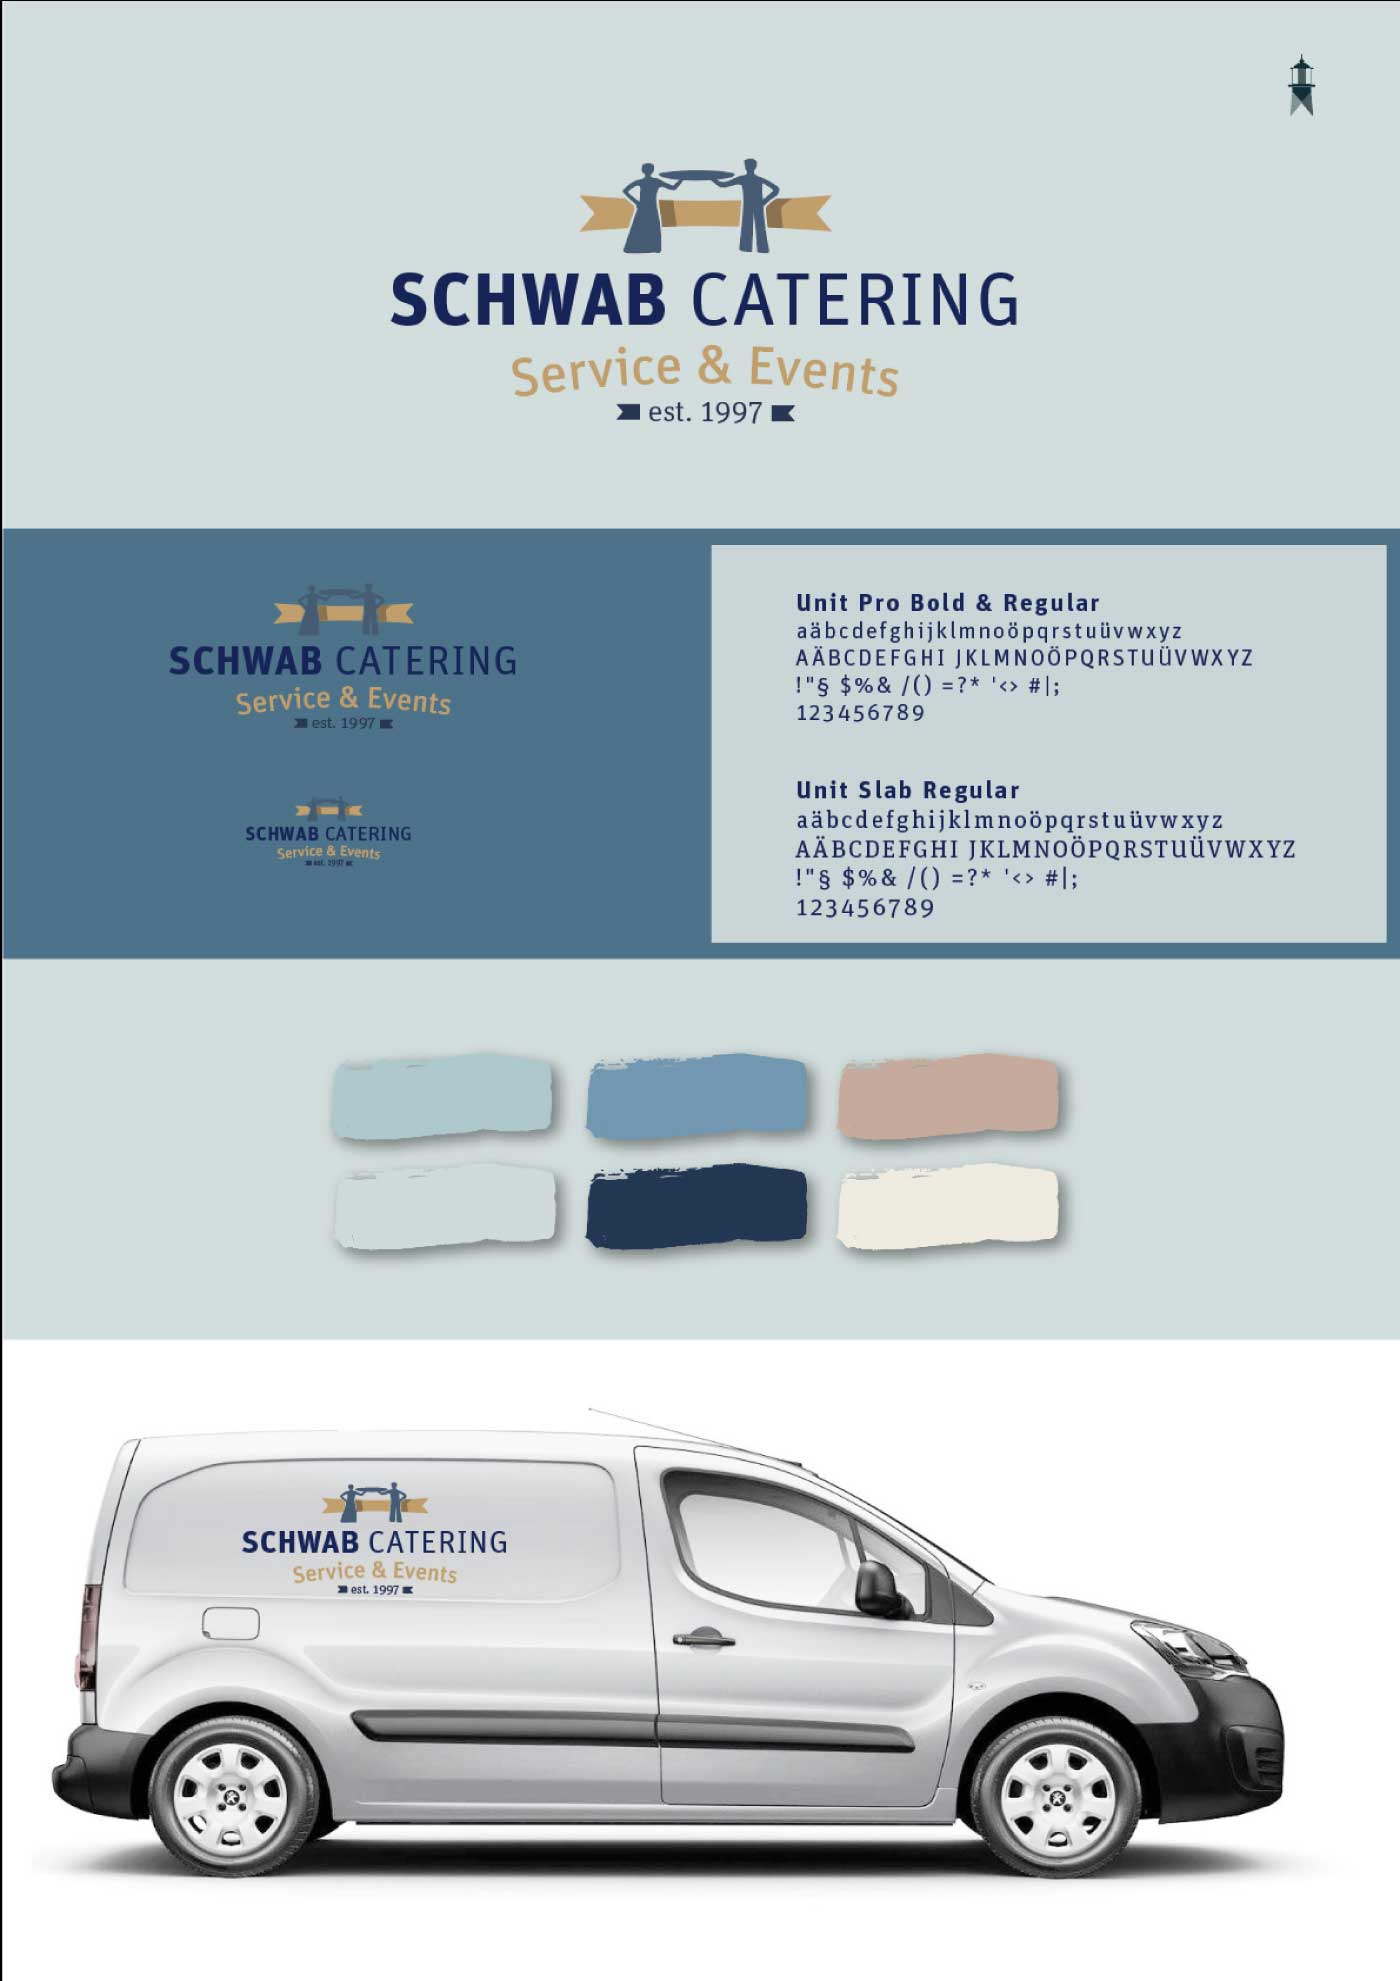 Corporate-Design-Schwab-Catering